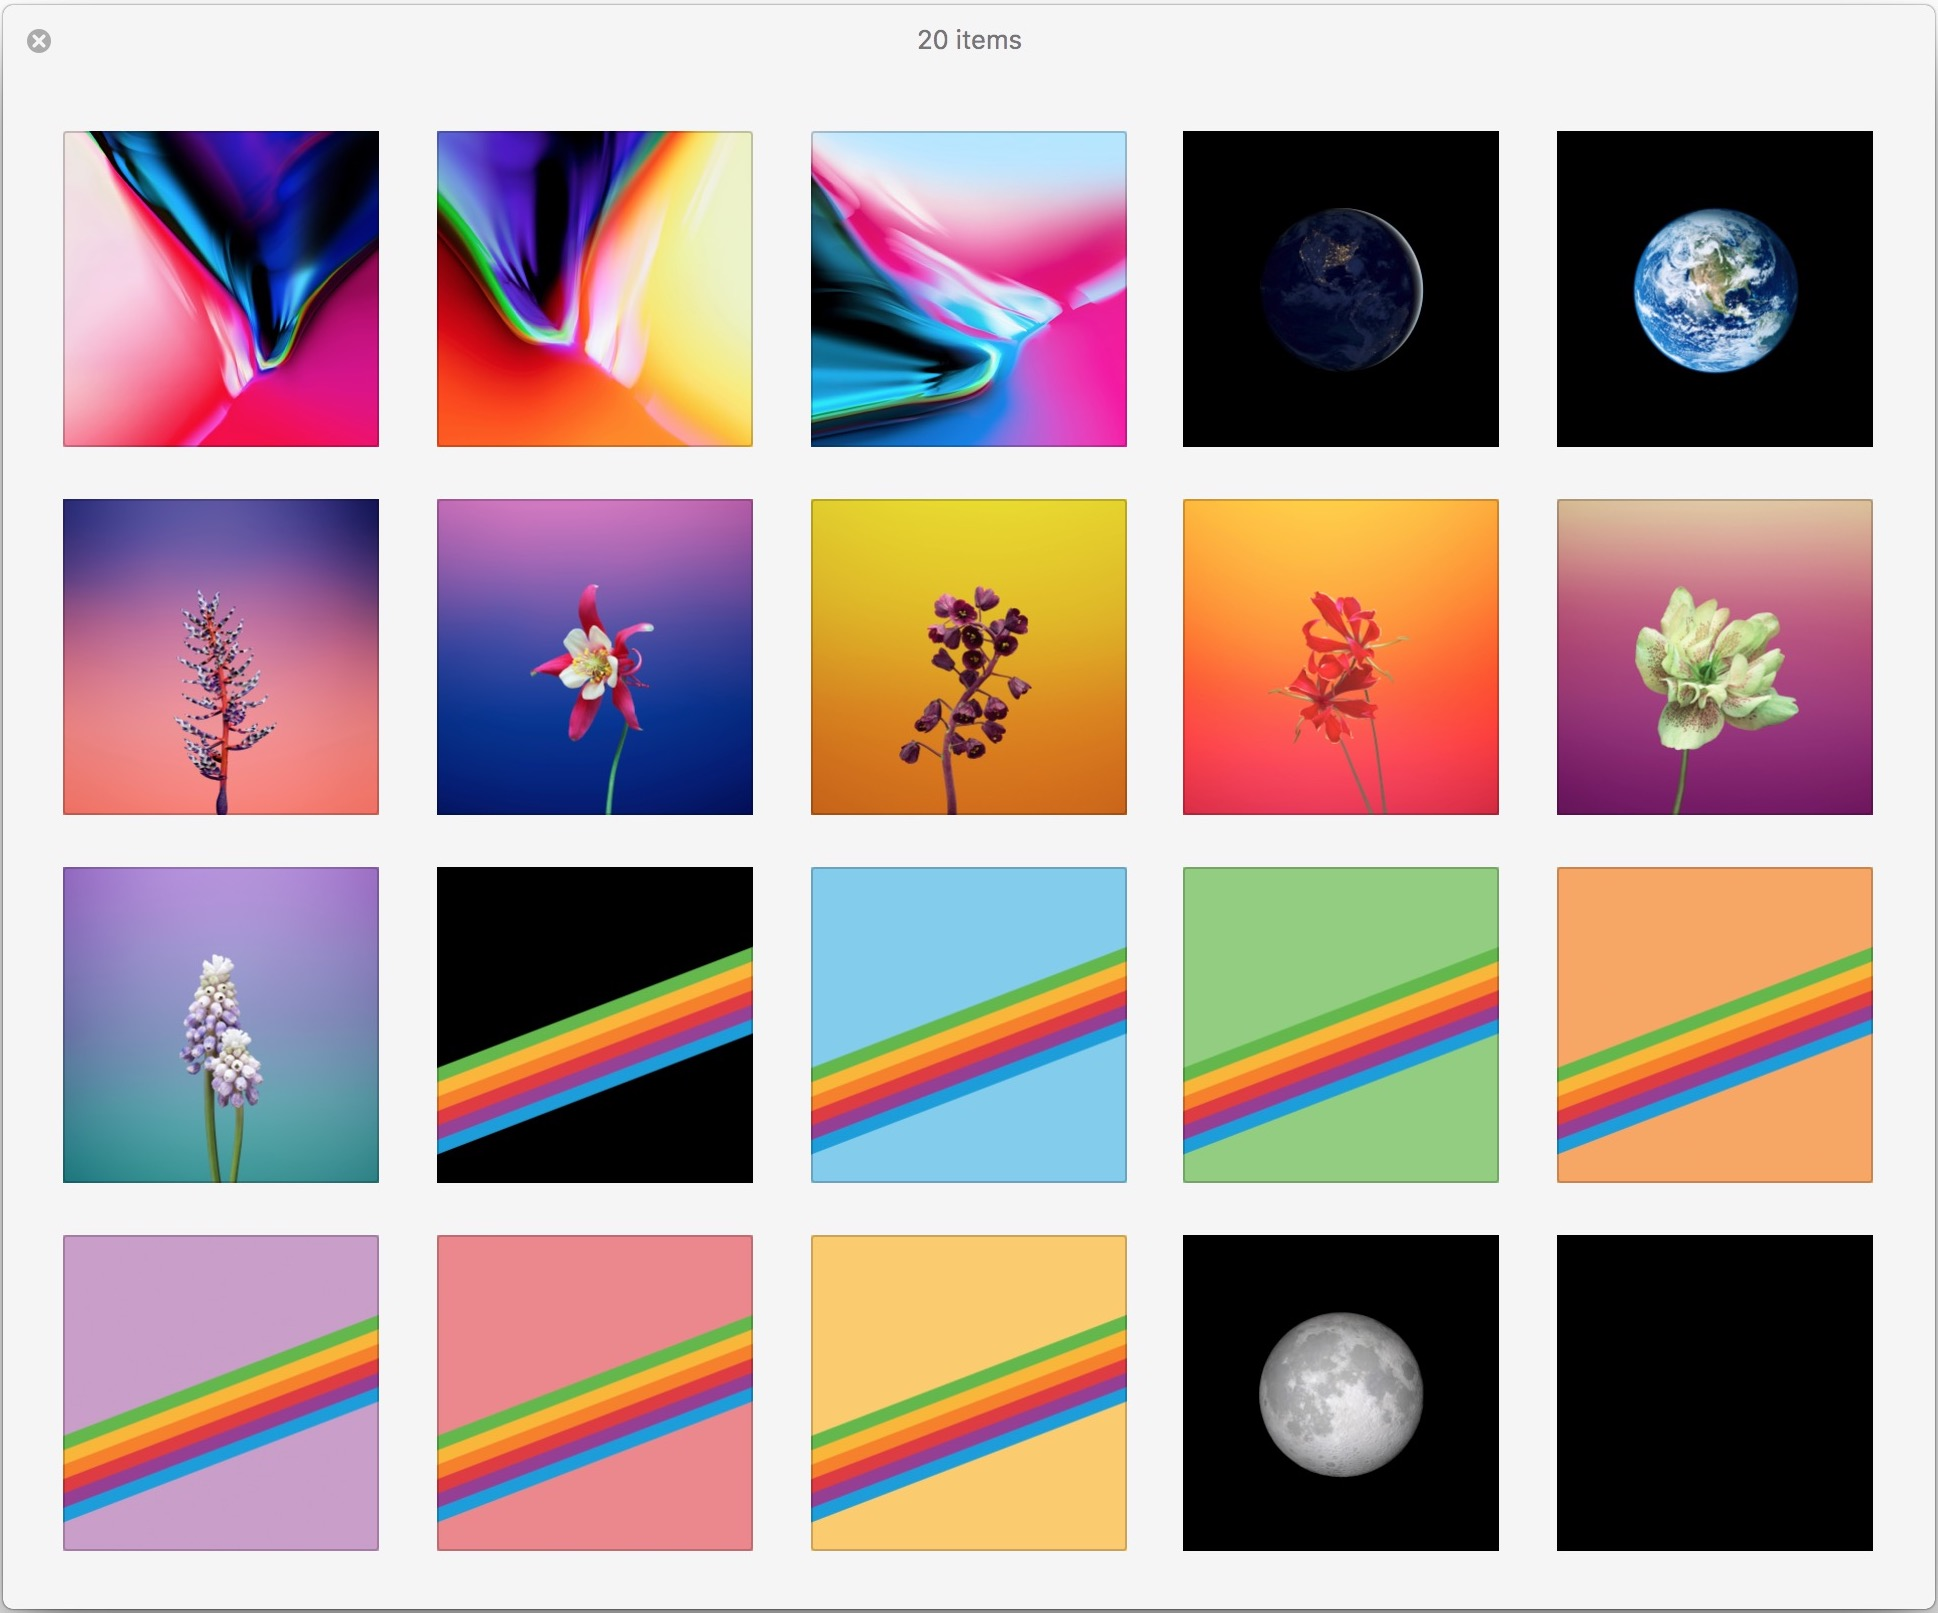 Get the 20 New iOS 11 Wallpapers Now 1938x1613